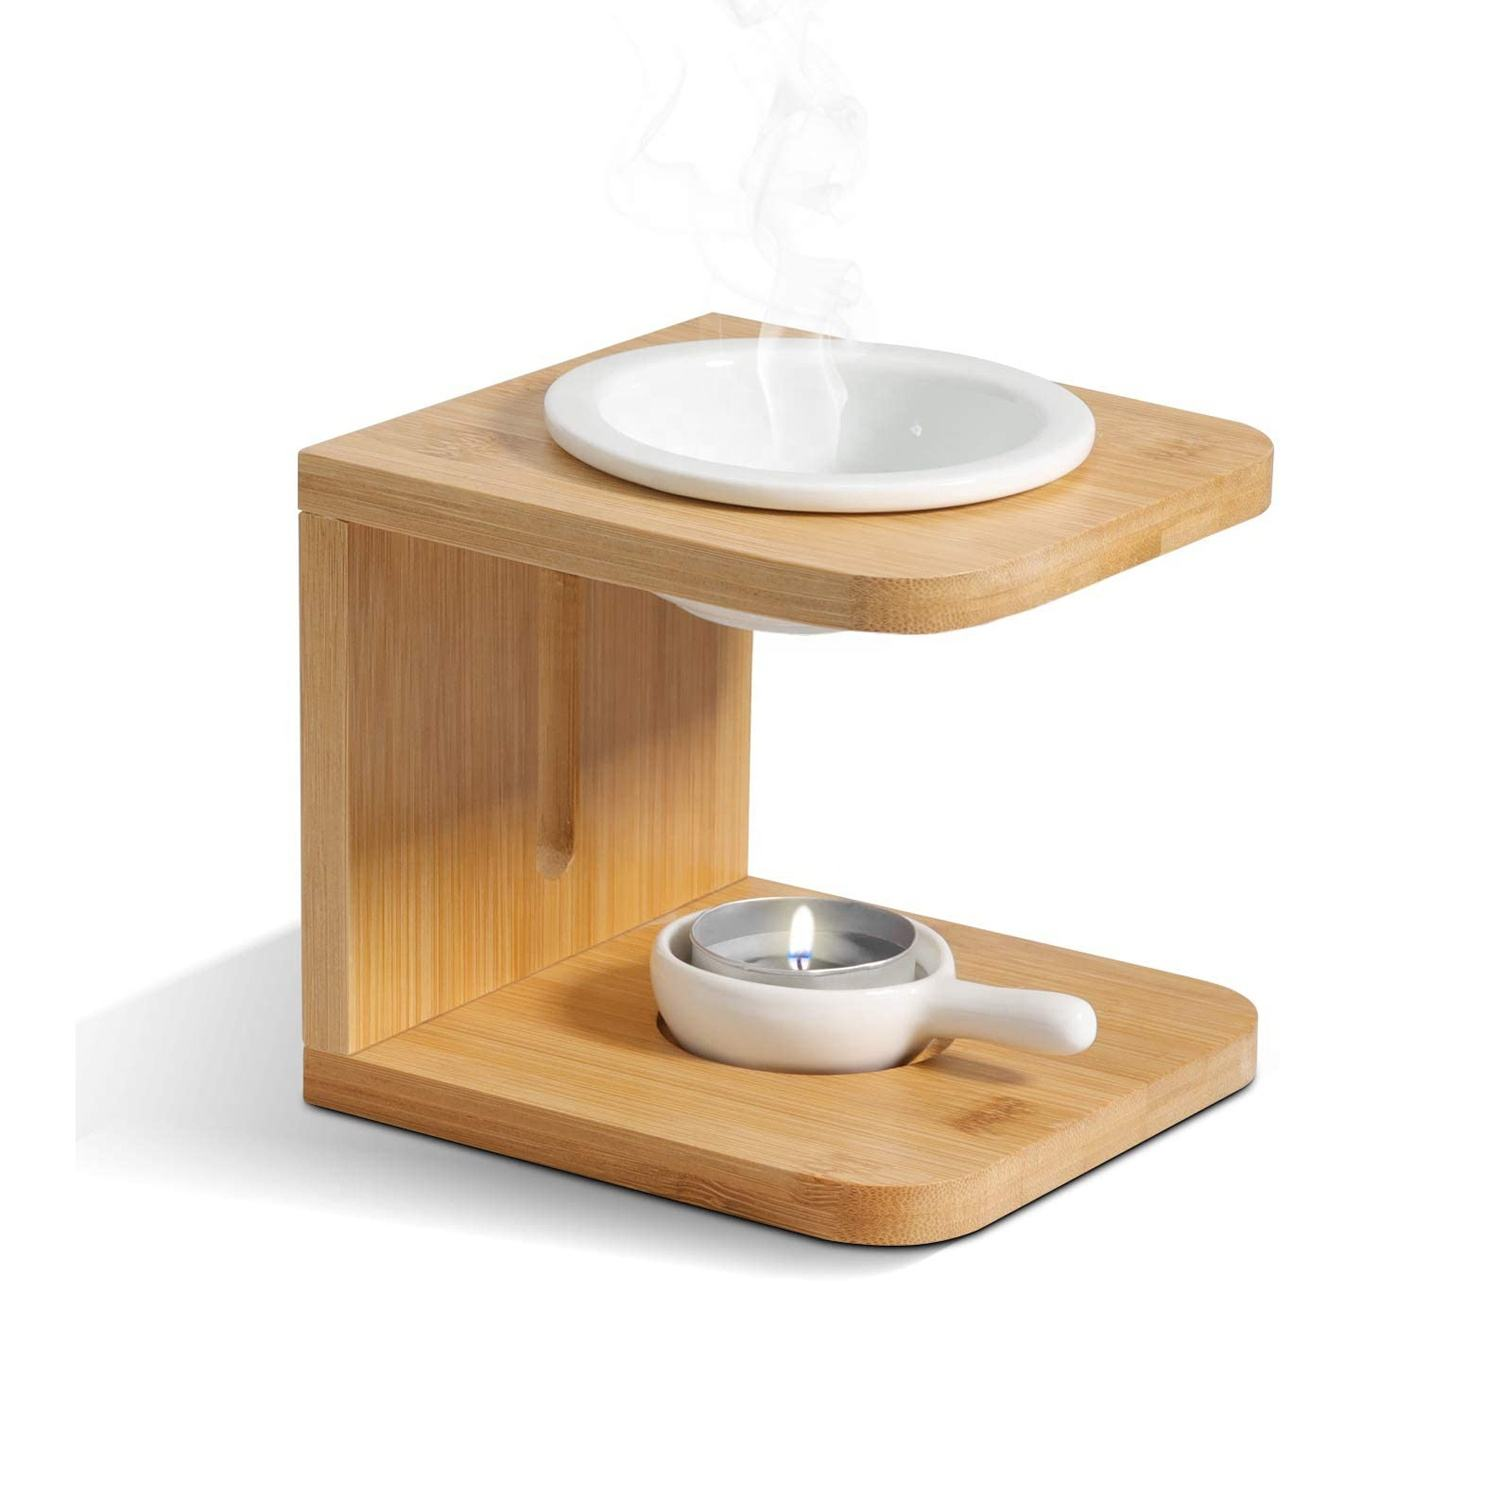 Wooden Bamboo Frame Essential Aroma Oil Burner Scented Wax Melt Burner For Yoga Spa Home Decor